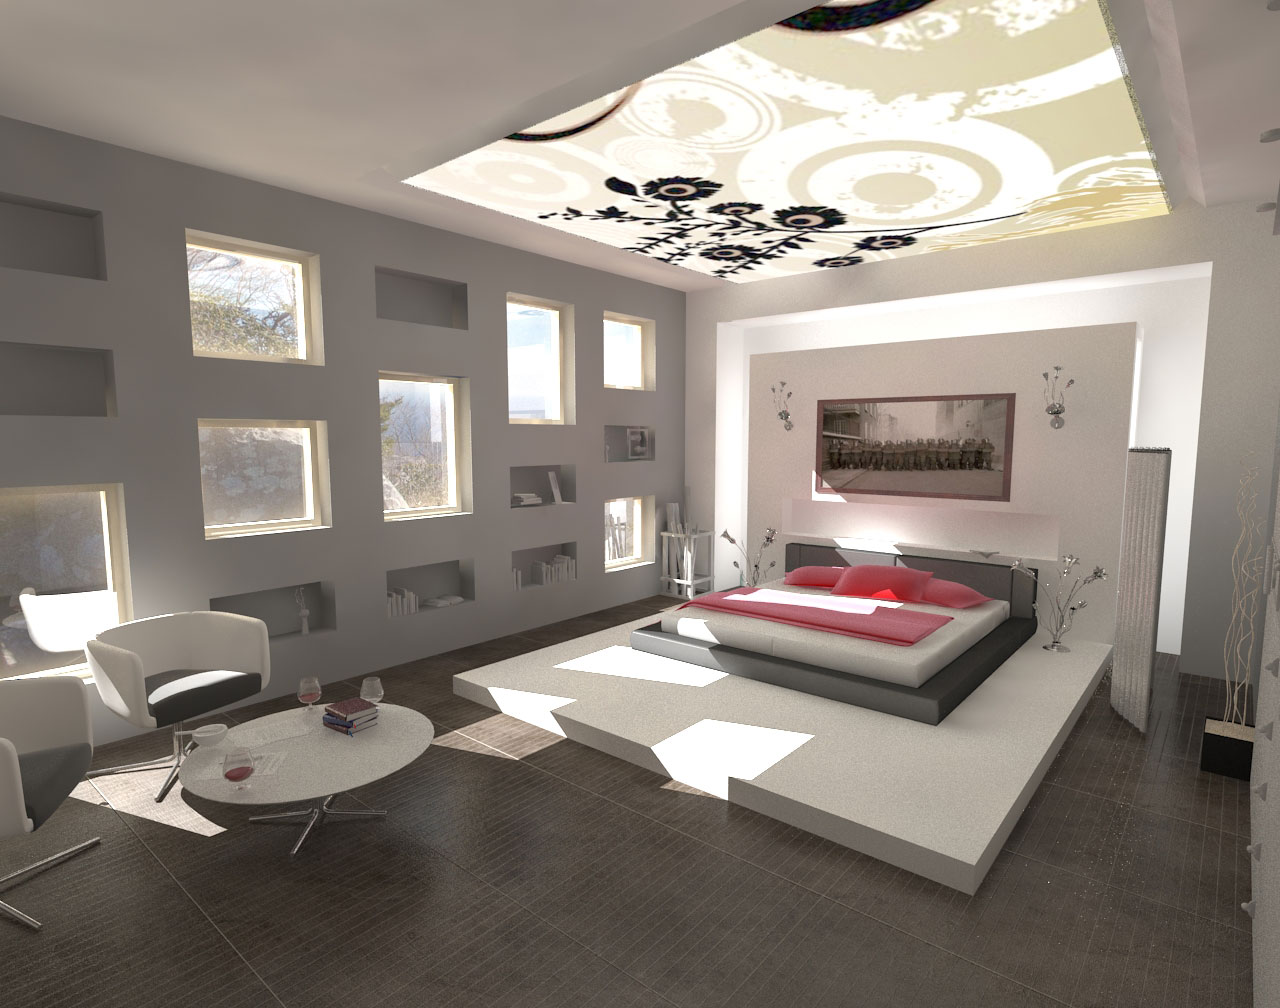 Decorations: Minimalist Design - Modern Bedroom Interior ... on Bedroom Design Minimalist  id=84473